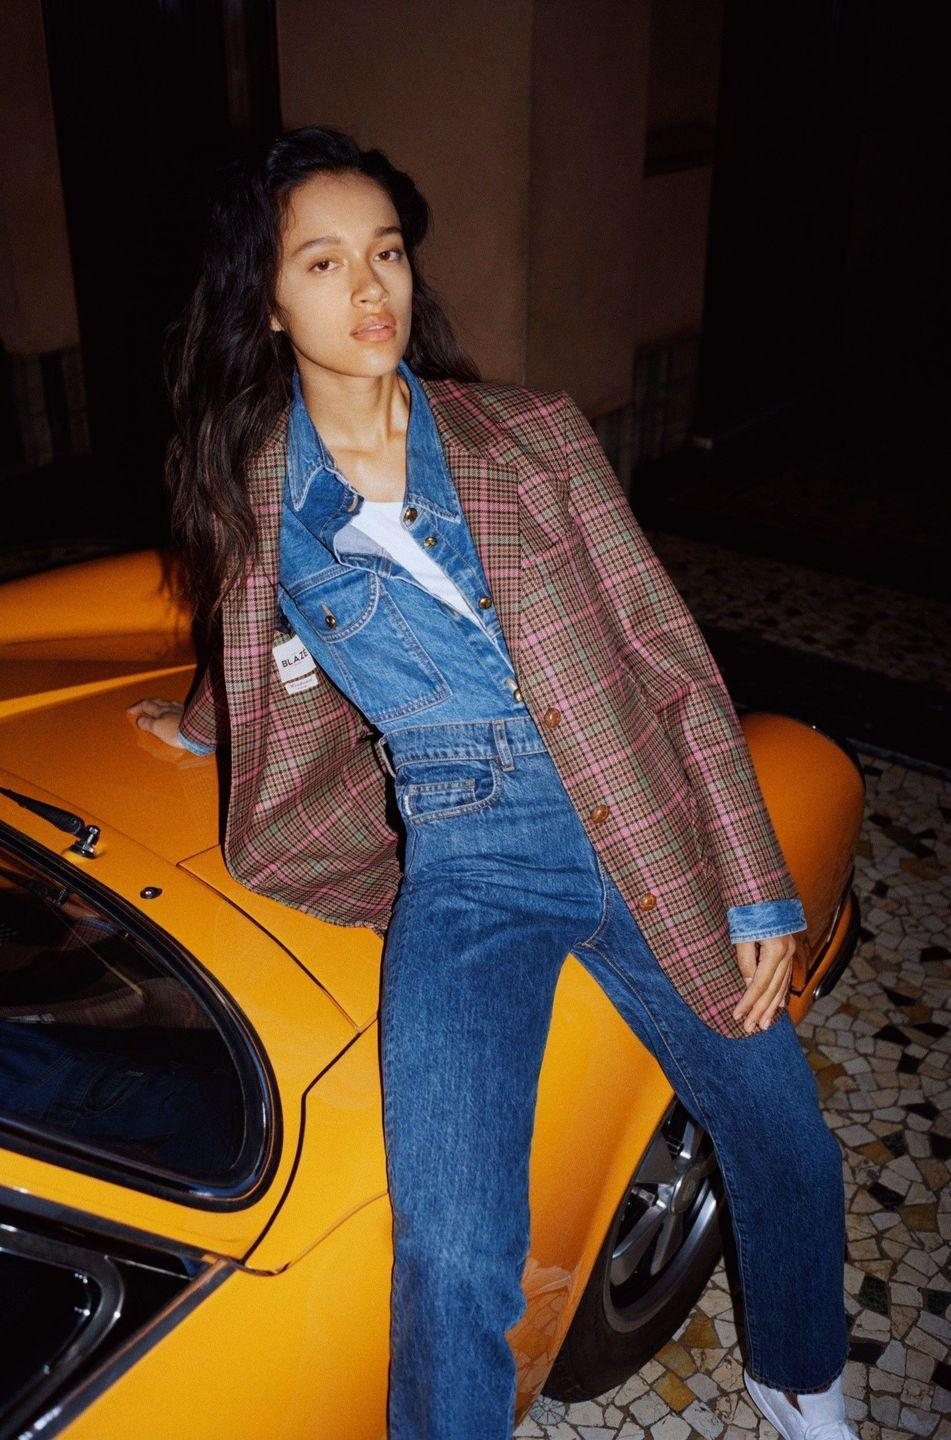 <p>For Blazé Milano, blazers don't always have to mean business. As actress Annabelle Belmondo (yes, that Belmondo, Breathless fans) demonstrates in the brand's spring 2021 lookbook—where she lounges in and against a yellow convertible on the cobblestone streets of Milan—they can also mean a whole lot of other things depending on the style. Ready to party? Try the one in ikat. Gearing up for a dinner under the stars? The white double-breasted version has your name on it. Need something for everyday? The pink-and-green tartan style will do nicely. Whether you dress it up with heeled sandals or down with sneakers, in a Blazé Milano blazer you know that you're dressed right.—<em>Barry Samaha</em></p>